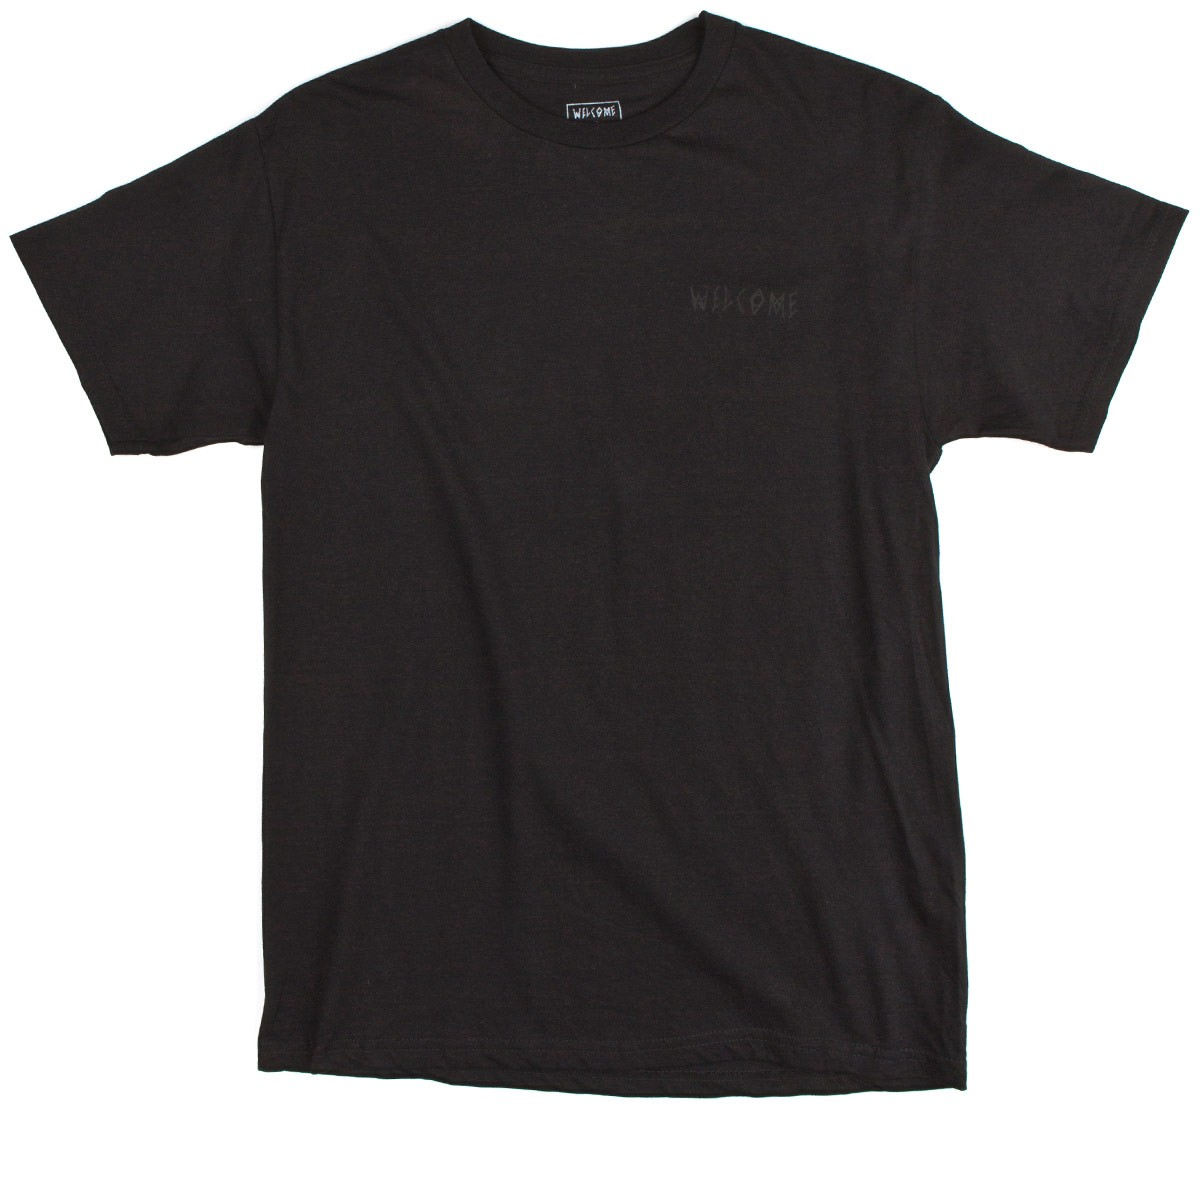 Welcome Symbol T-Shirt - Black/Black